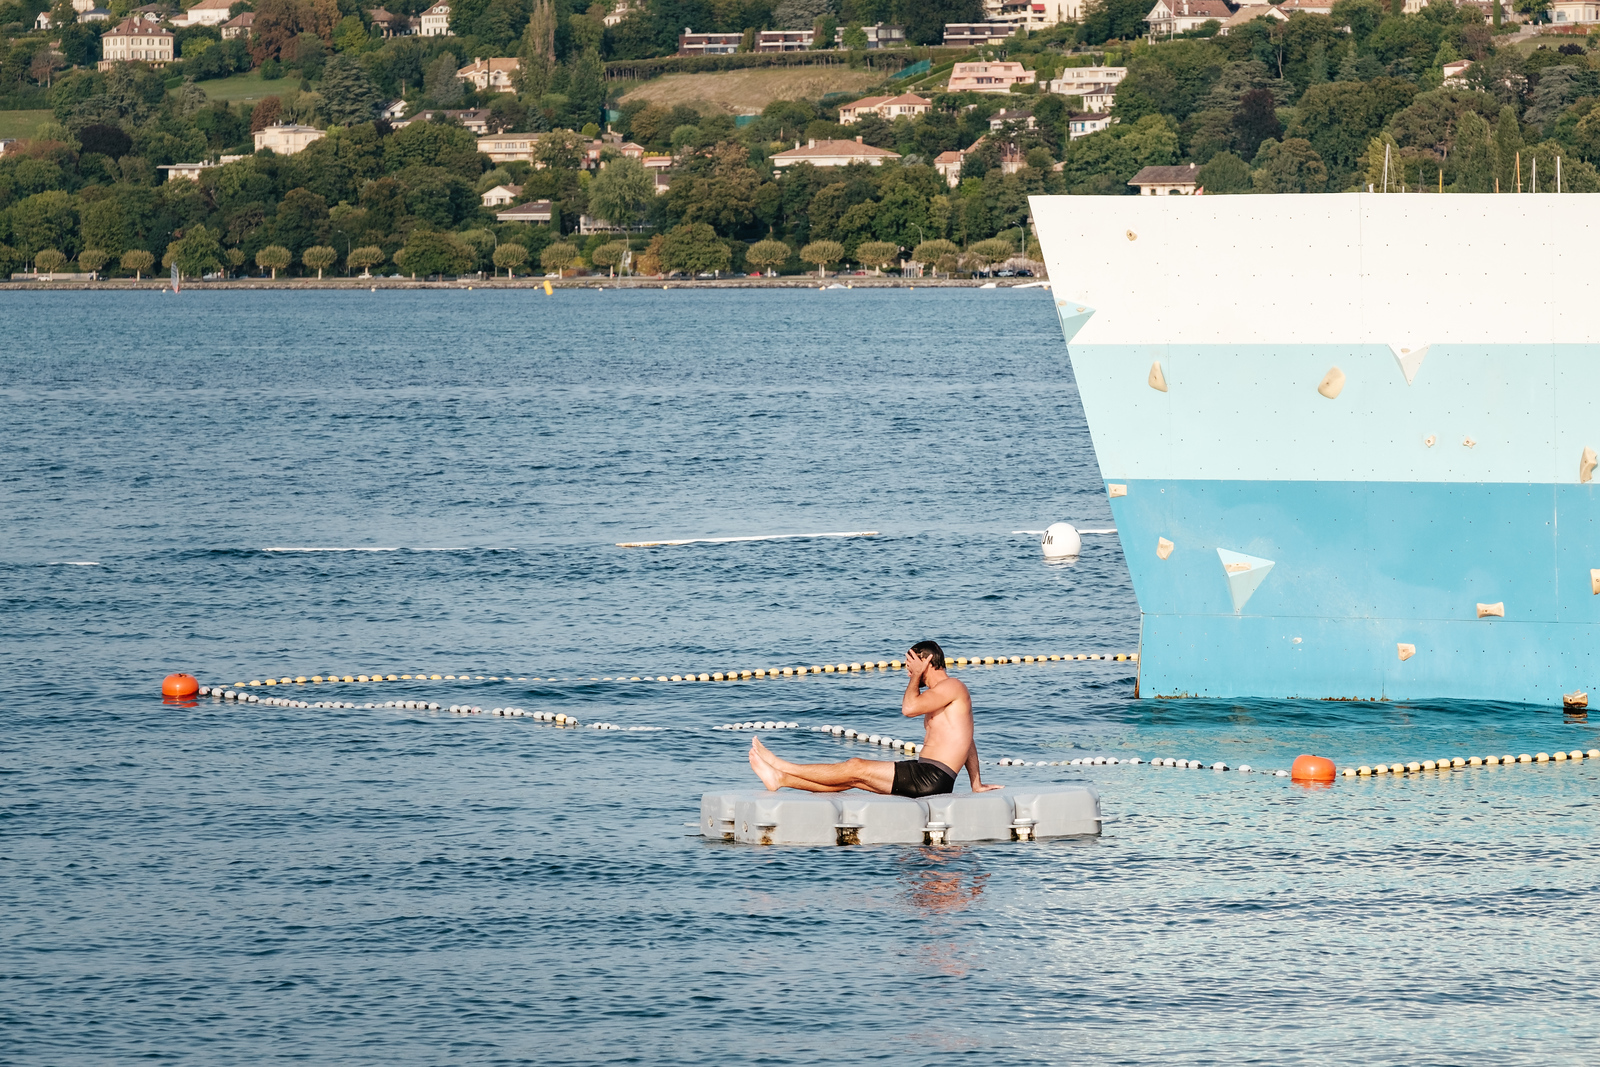 A man enjoying the summer at Bain des Paquis Geneva